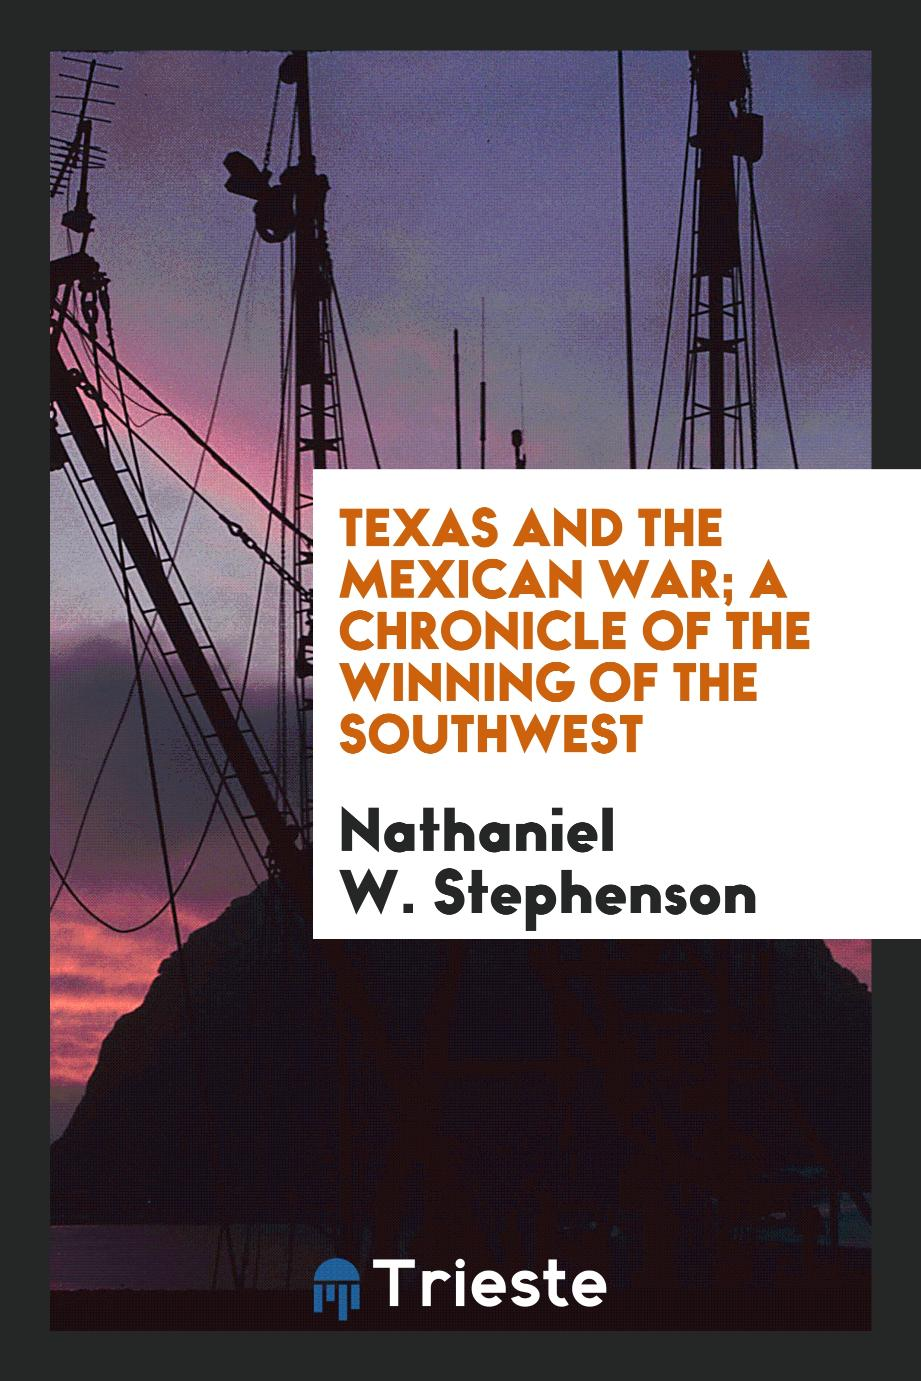 Texas and the Mexican war; a chronicle of the winning of the Southwest